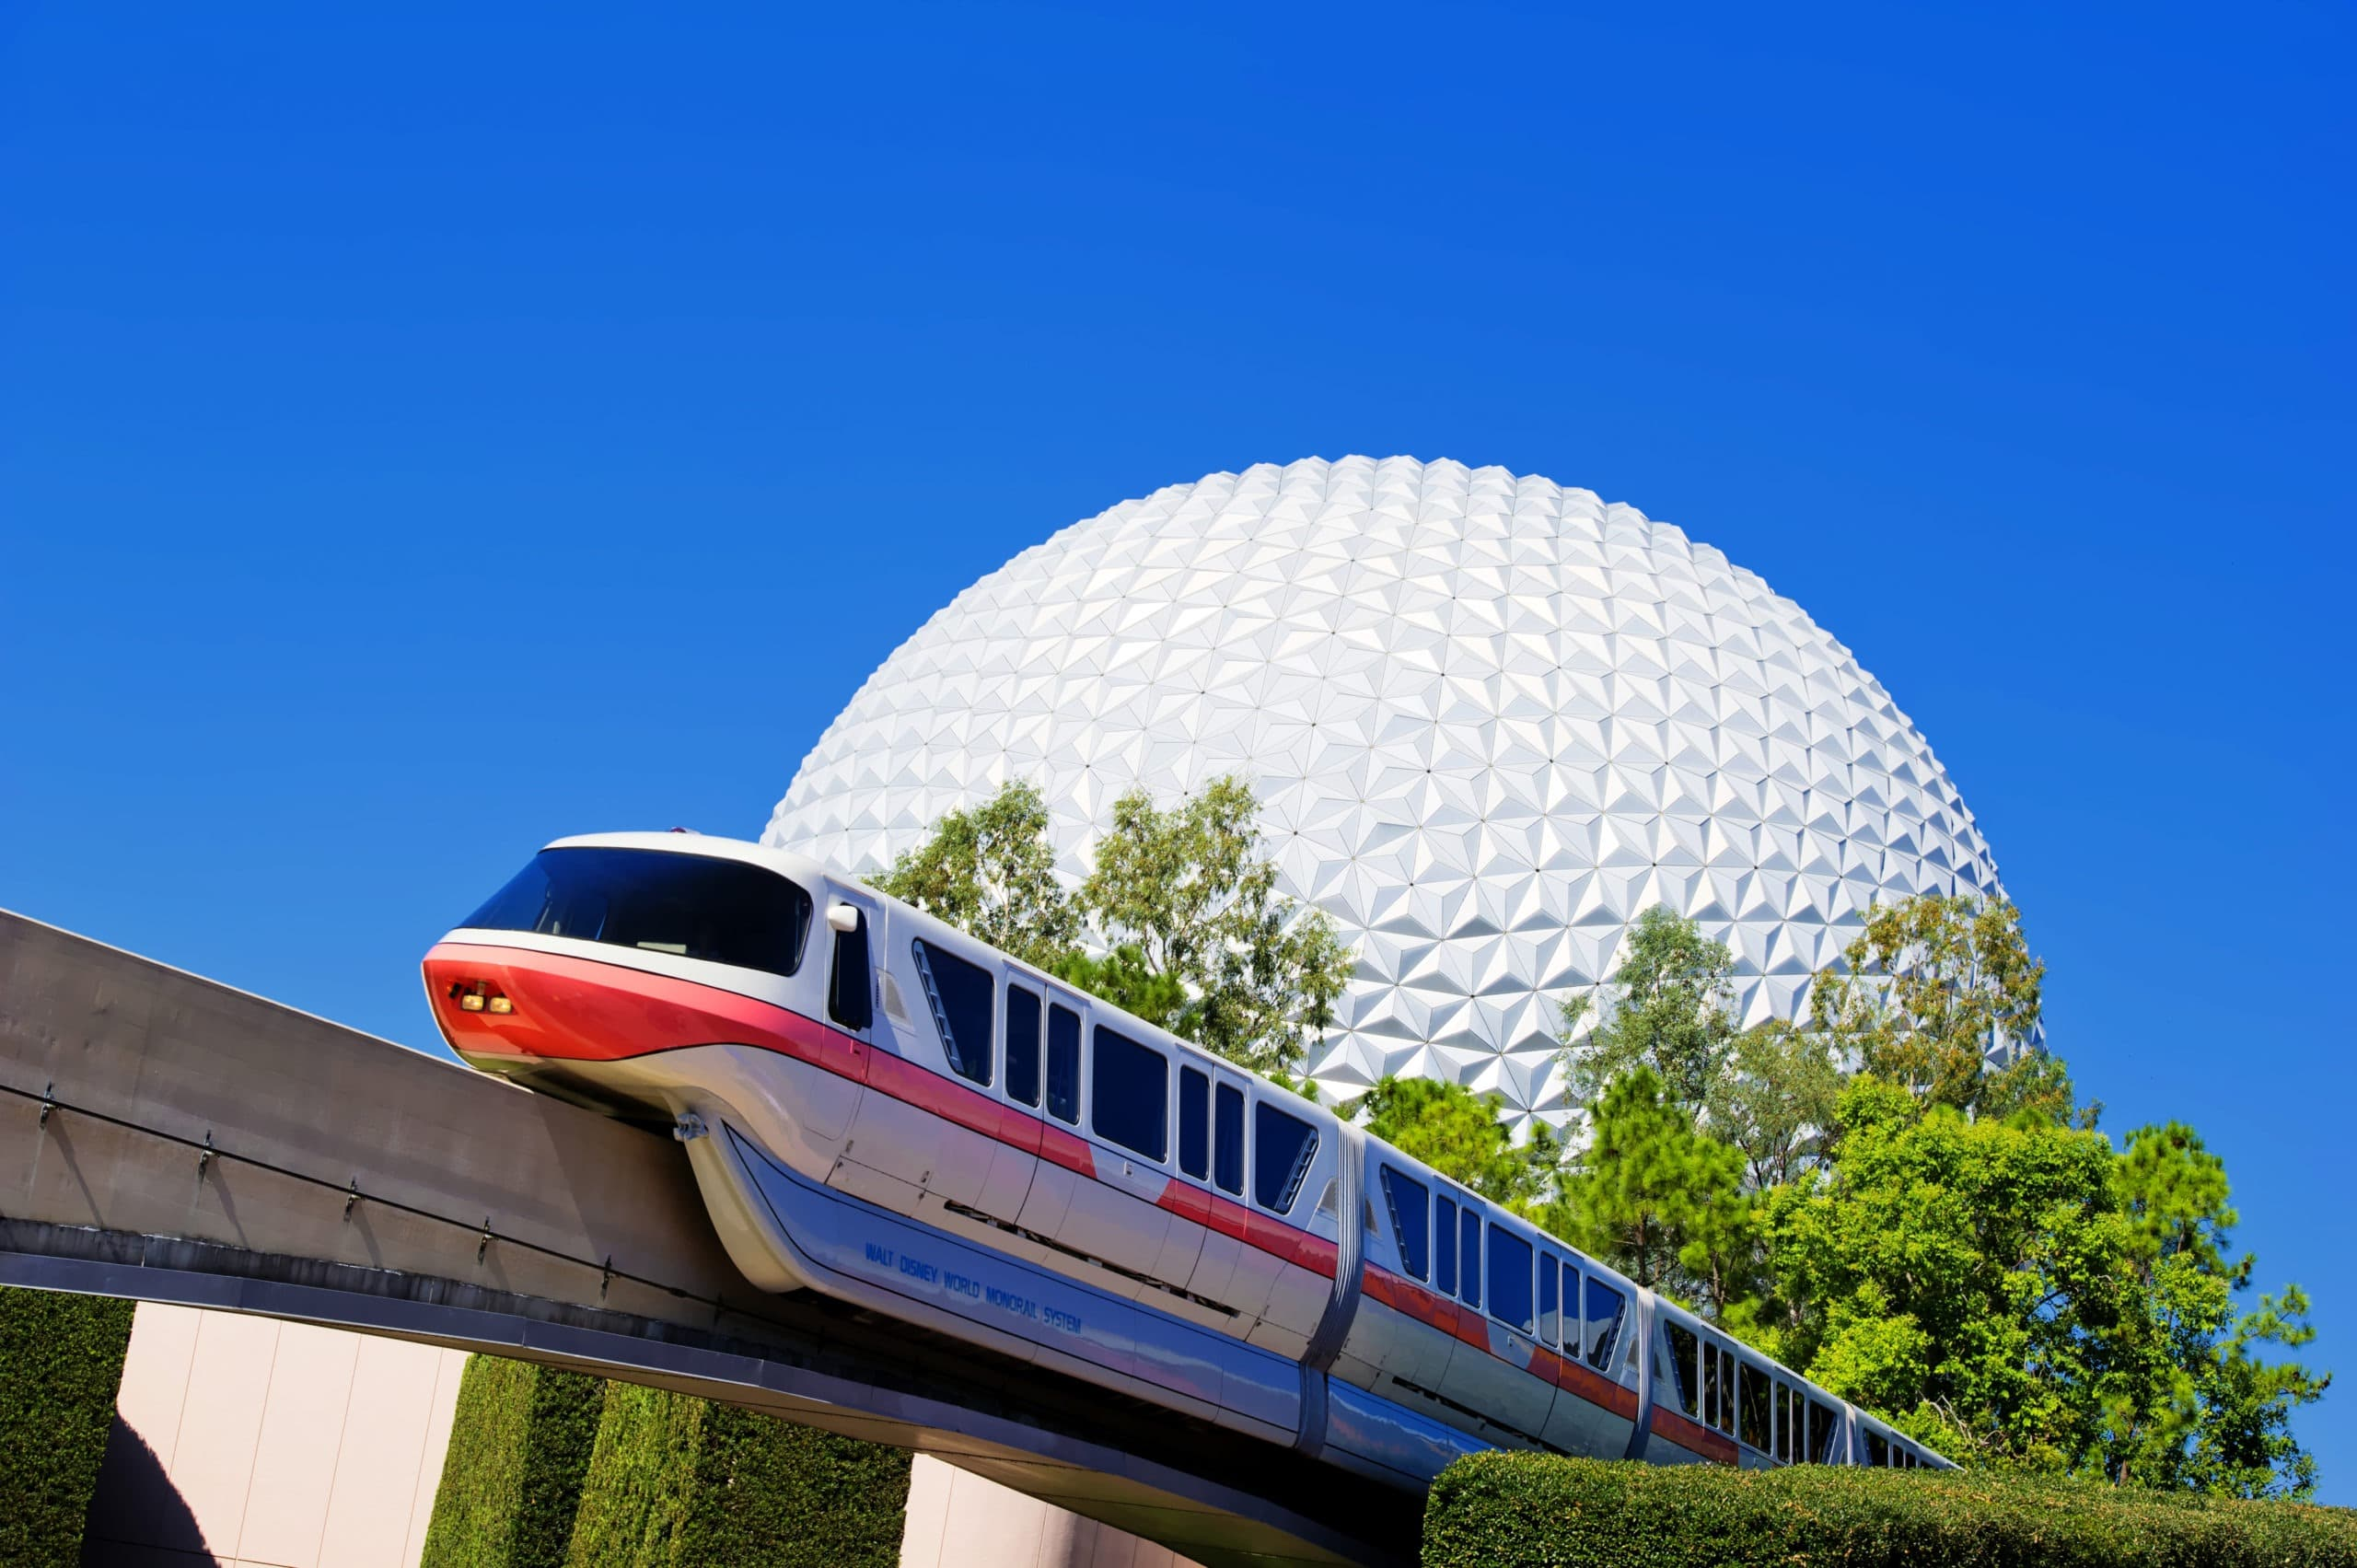 A monorail train passes by Spaceship Earth, the visual and thematic centerpiece of Epcot at Walt Disney World Resort